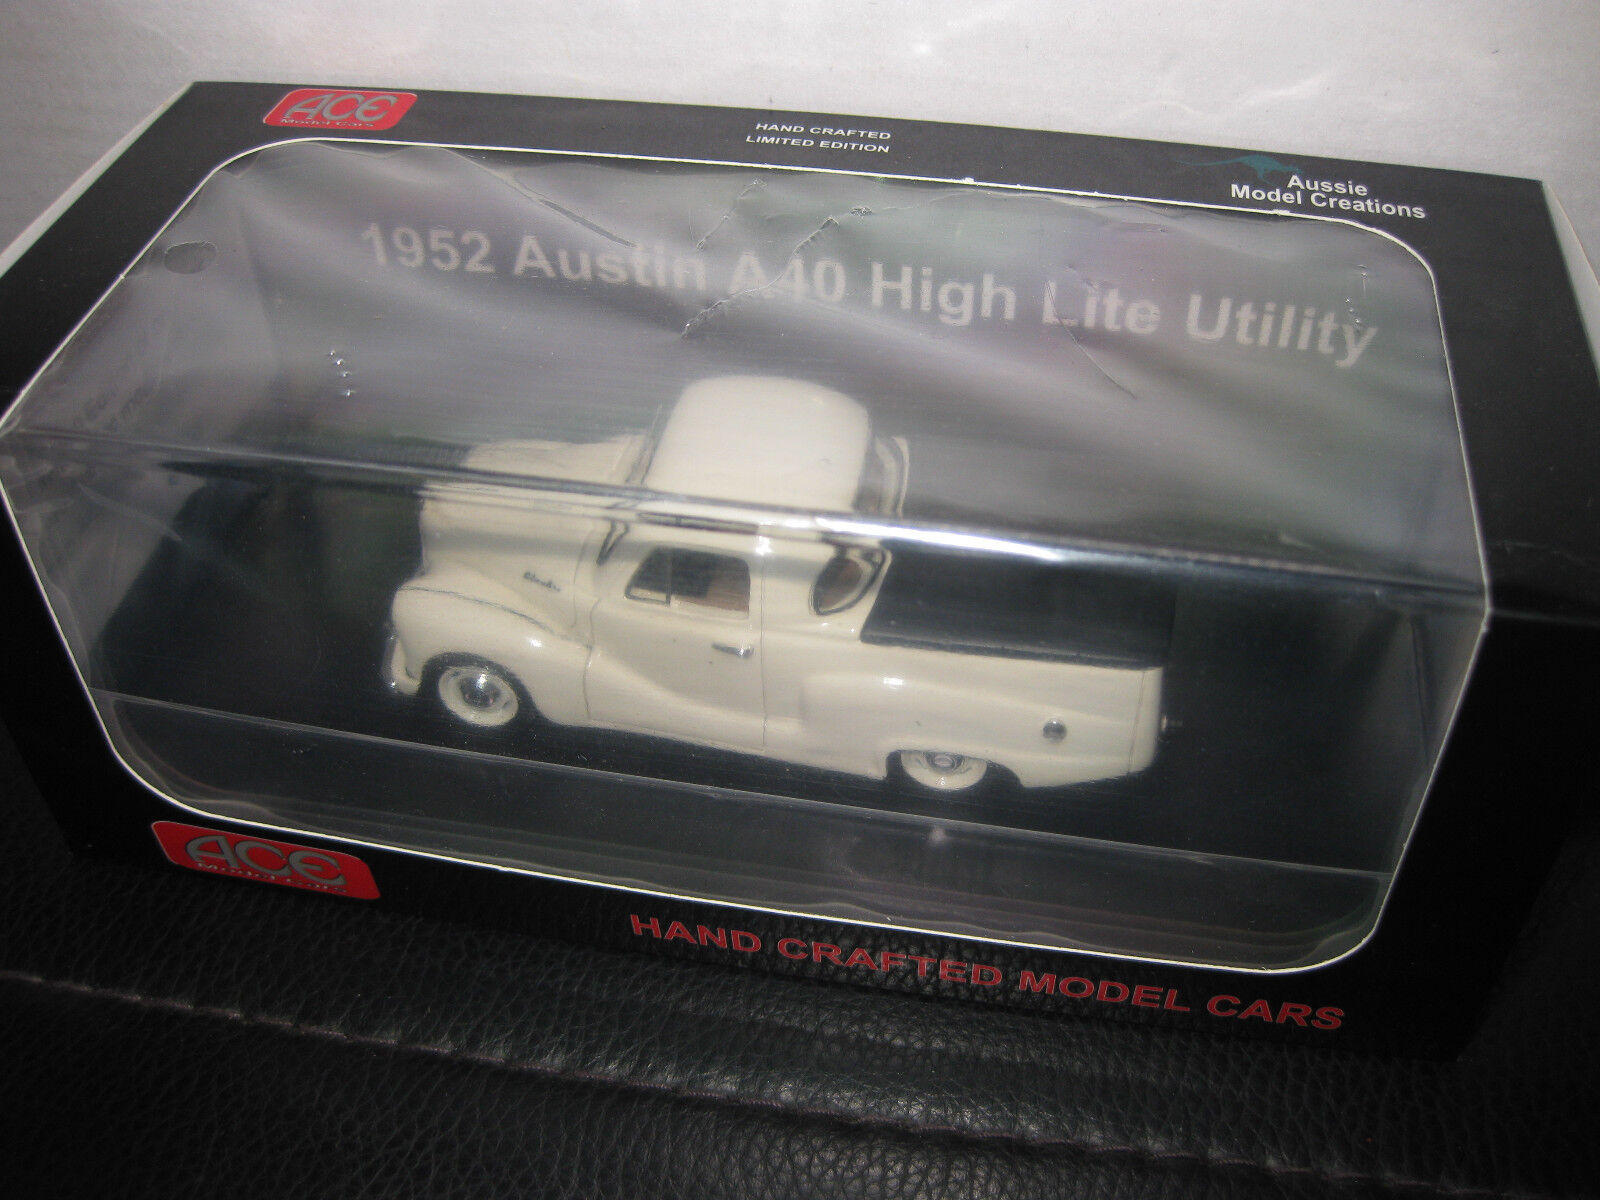 1 43 ACE ACE ACE MODEL CARS 1952 AUSTIN A40 HIGH LITE UTE  LIGHT CREAM  UTE LTD EDITION 4f3ff1